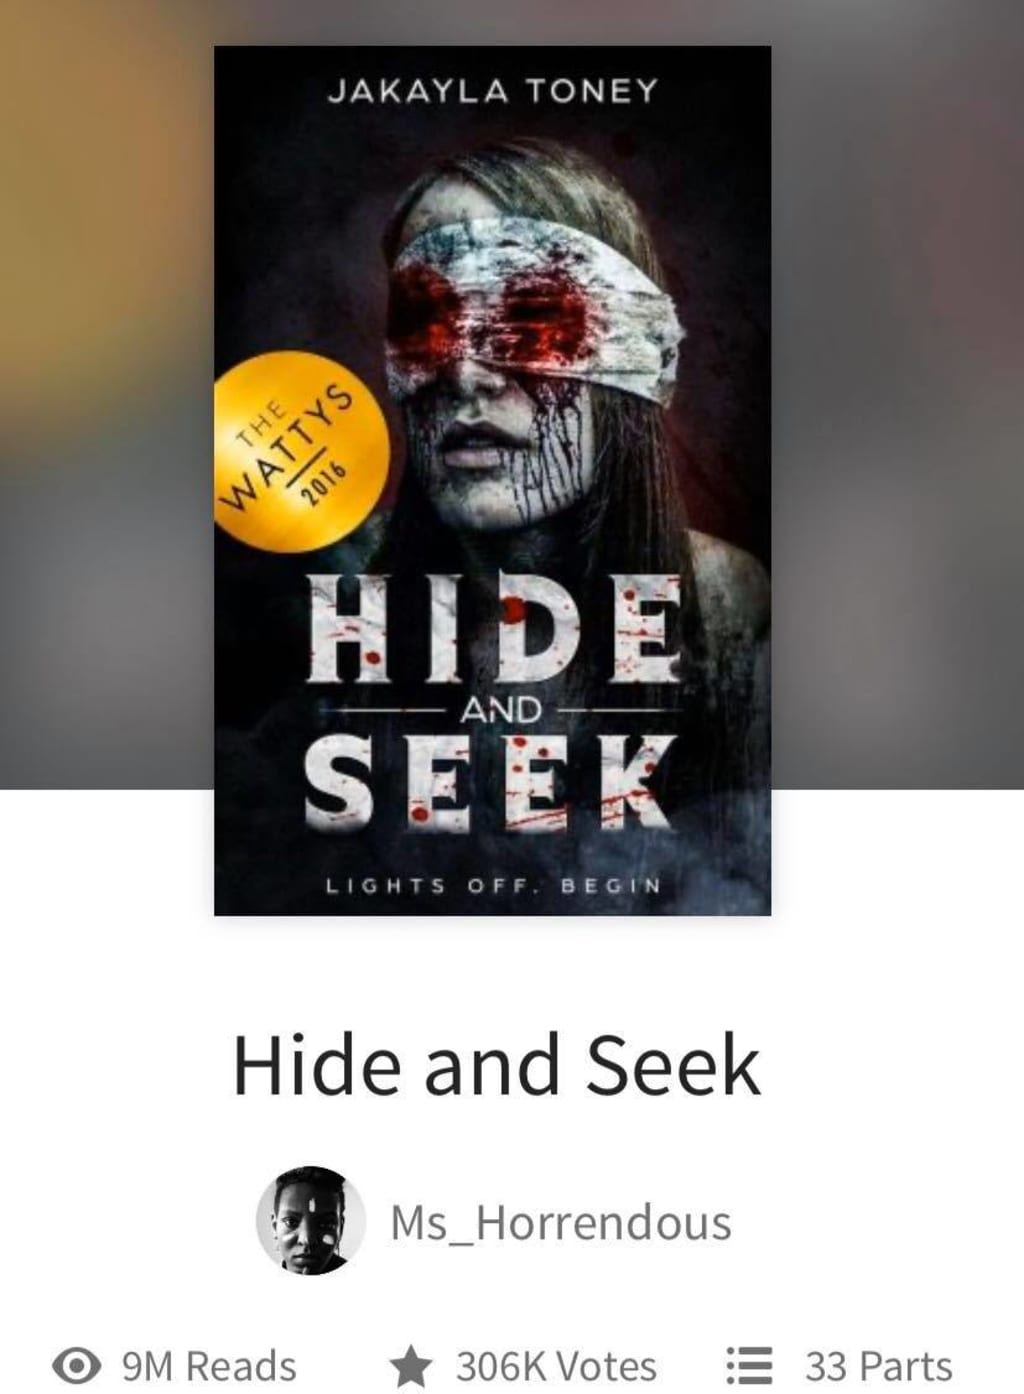 How to Get Millions of Views on Your Wattpad Novel